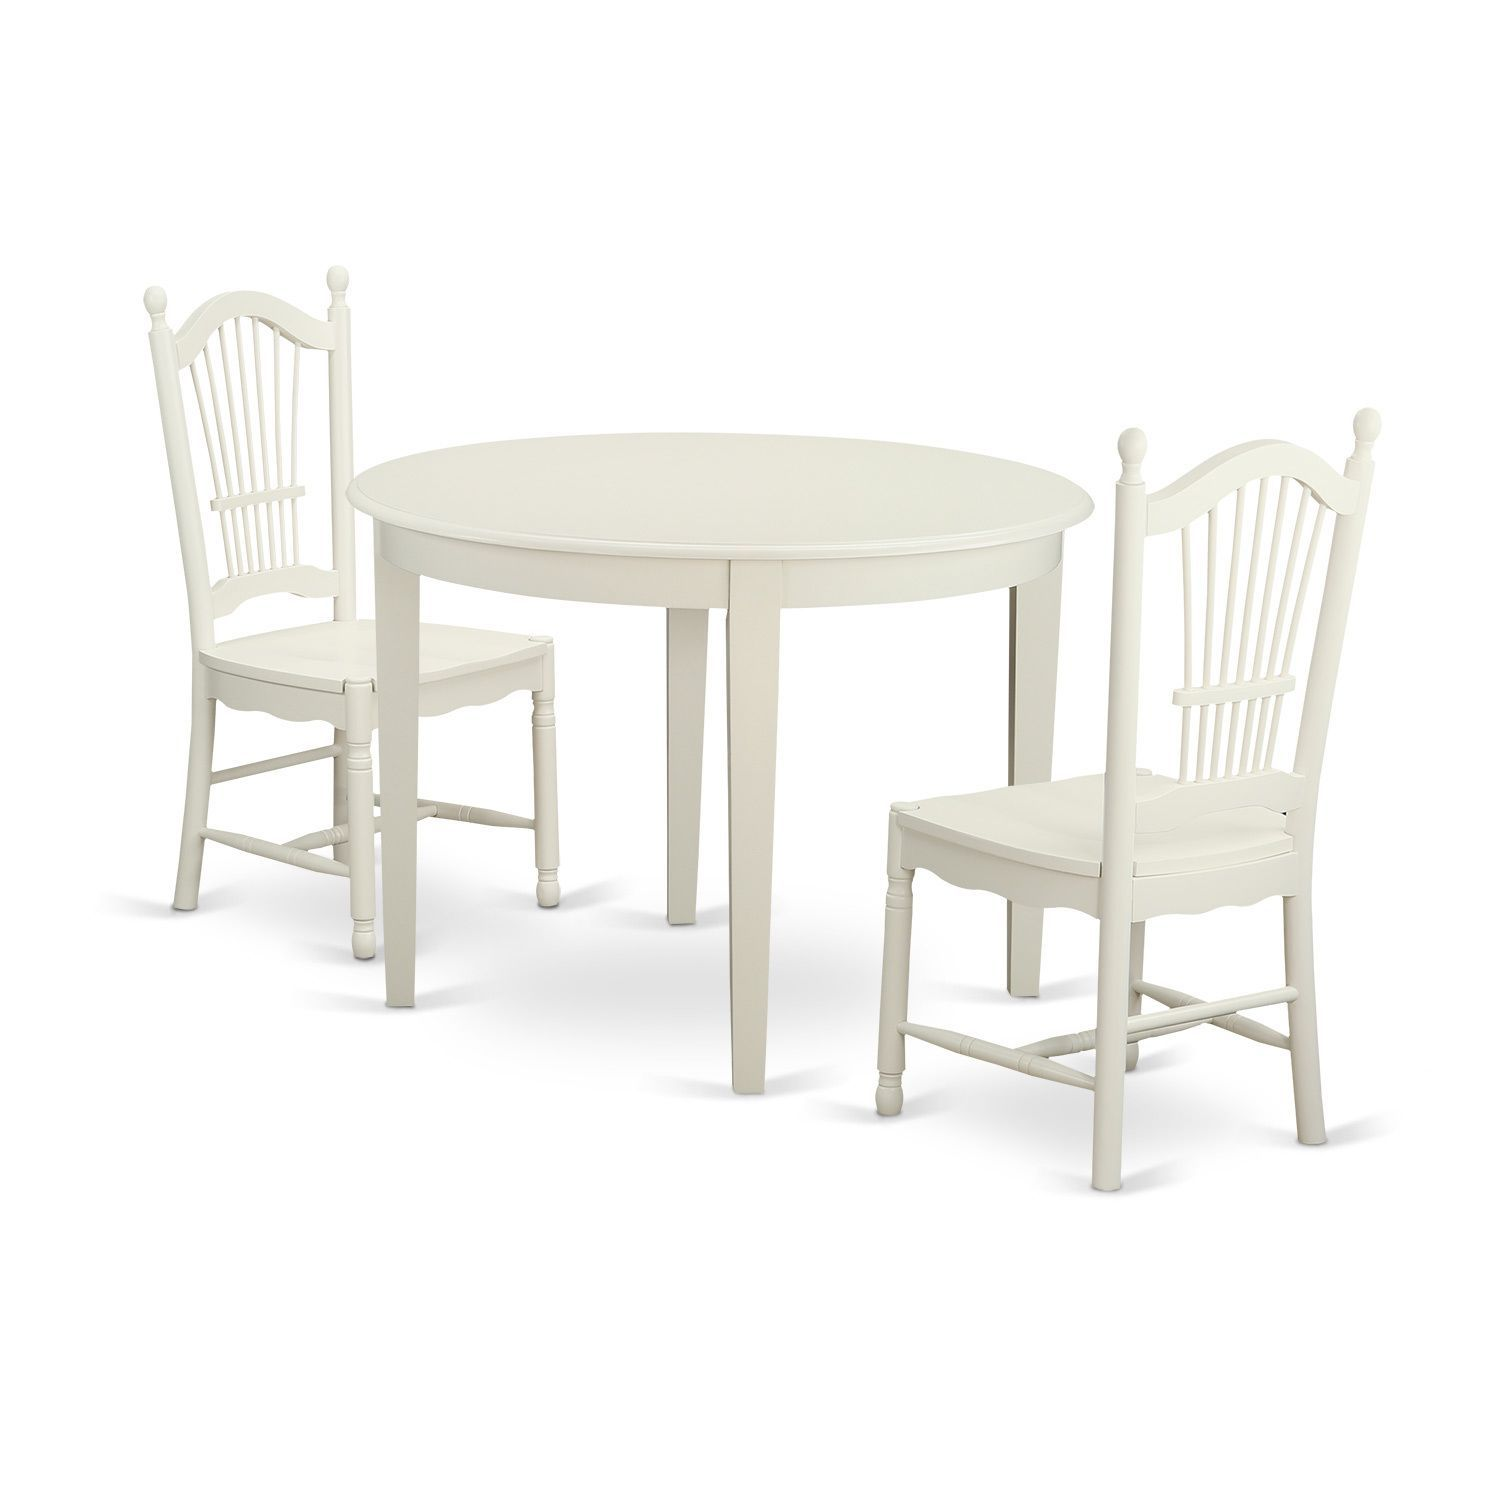 3-piece Kitchen Nook Dining Set with Table and 2 Dining Chairs  sc 1 st  Pinterest & 3-piece Kitchen Nook Dining Set with Table and 2 Dining Chairs ...